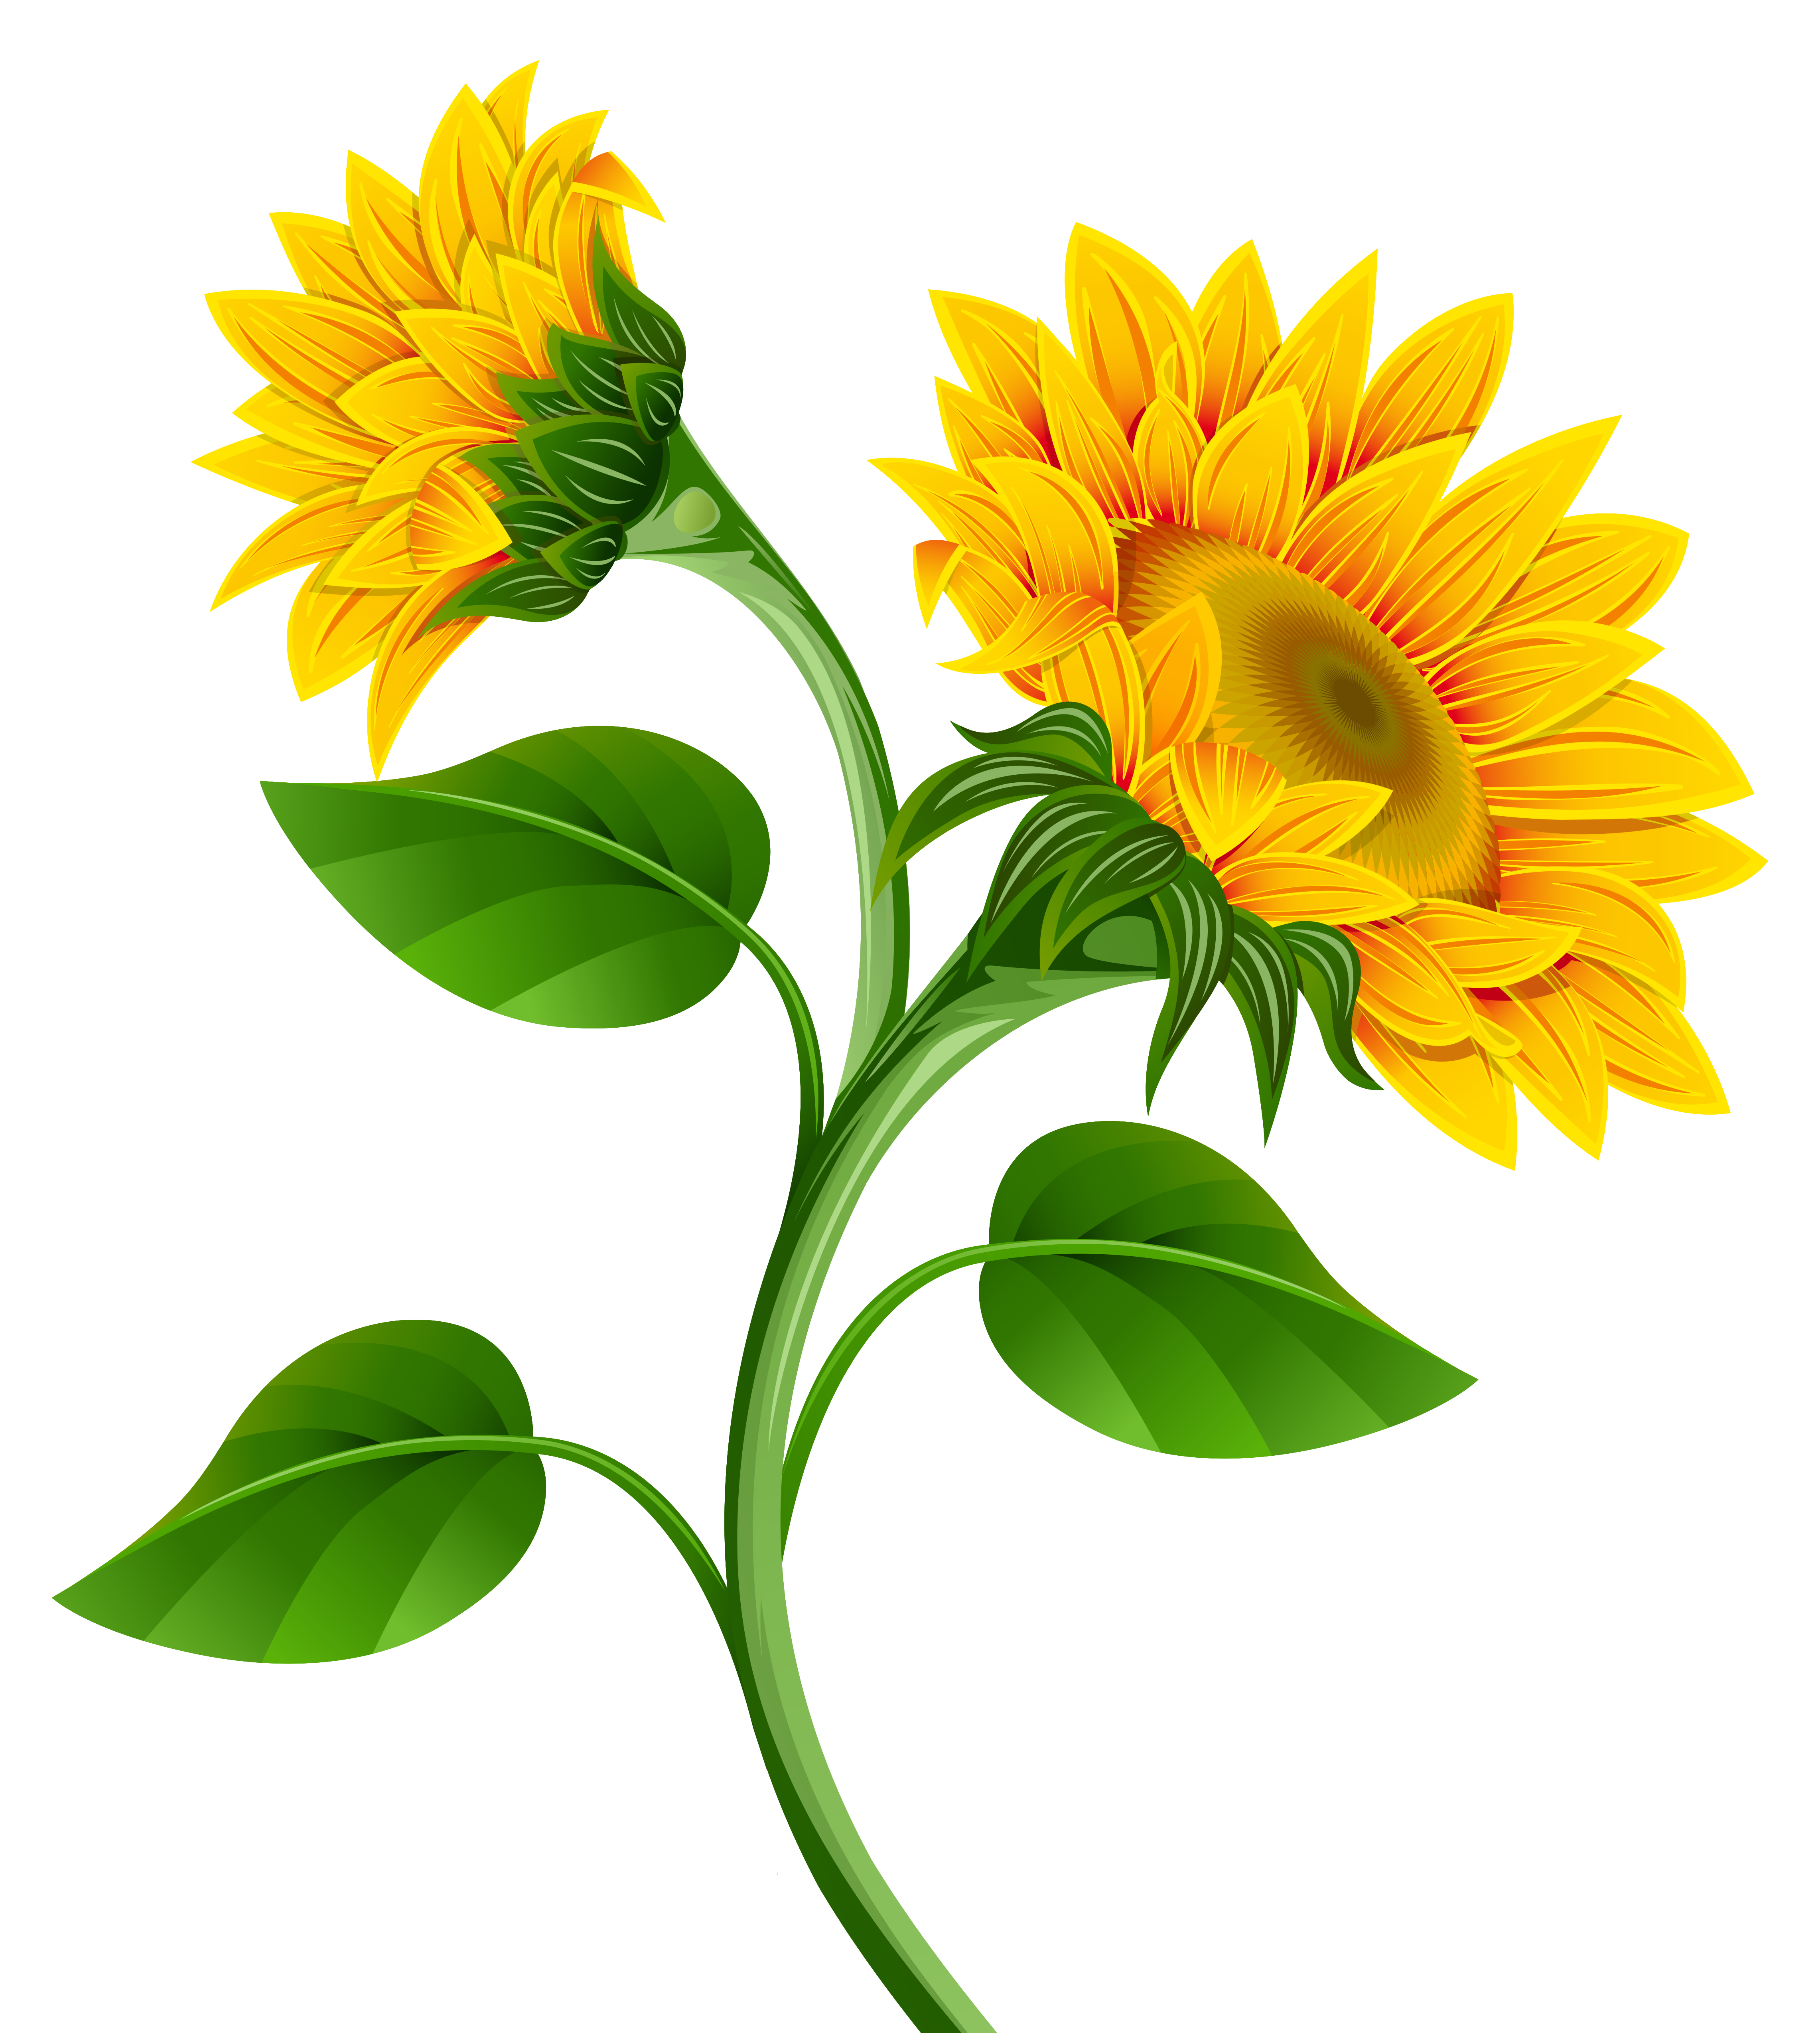 Sun flower clipart svg freeuse library Sunflowers PNG Clipart Image | Gallery Yopriceville - High-Quality ... svg freeuse library